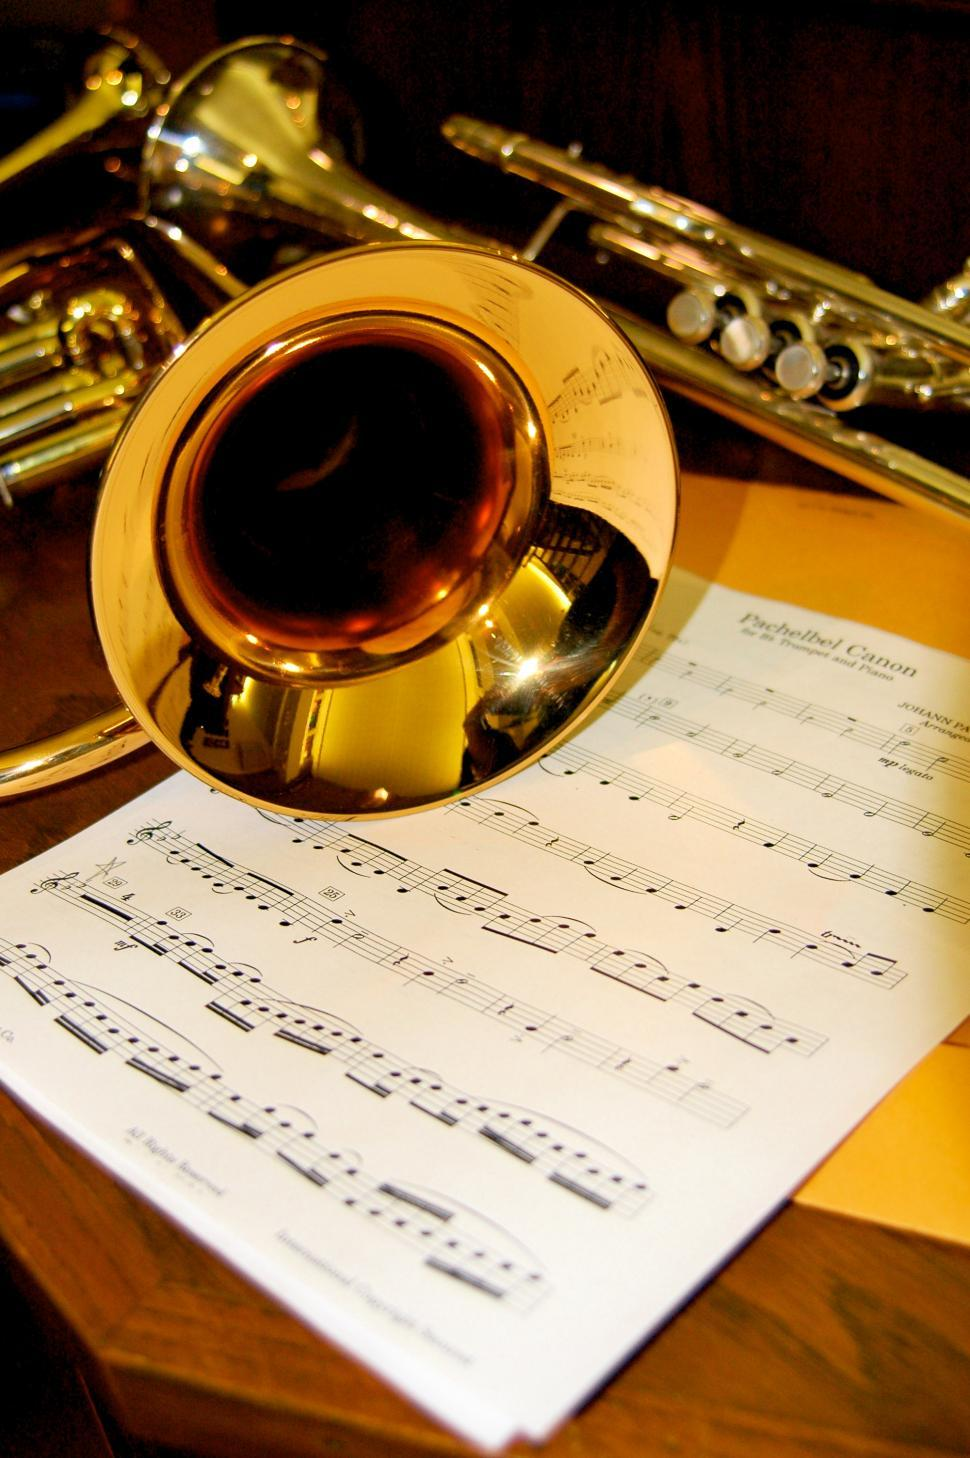 Free image of Trumpet and Music Sheet.  Bronze instrument with notes on music scales on sheet.